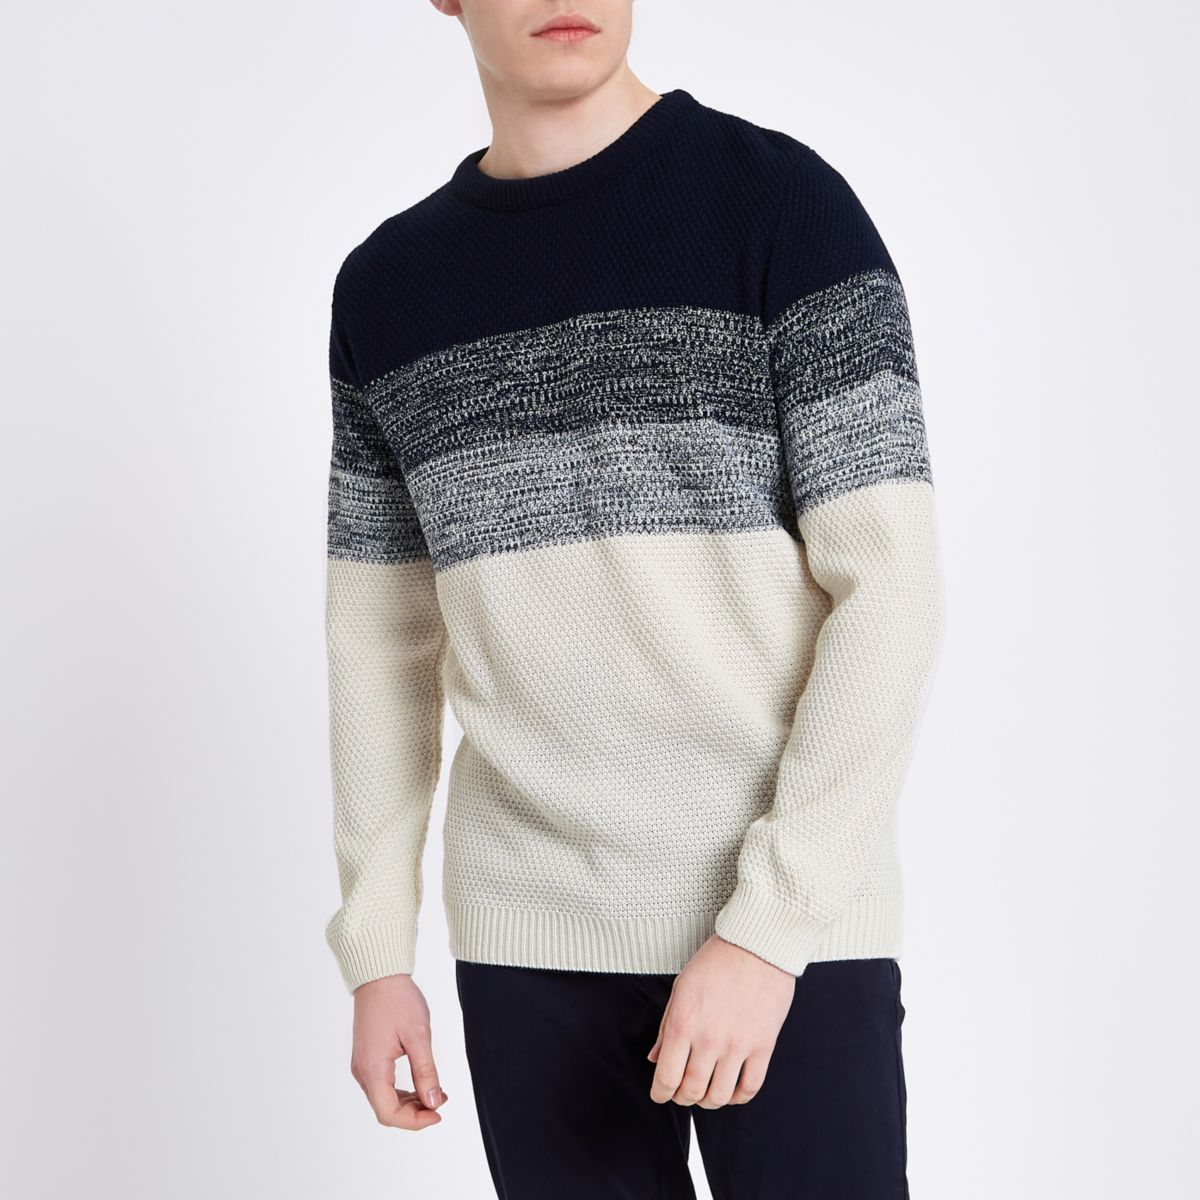 Navy and cream ombre knit sweater